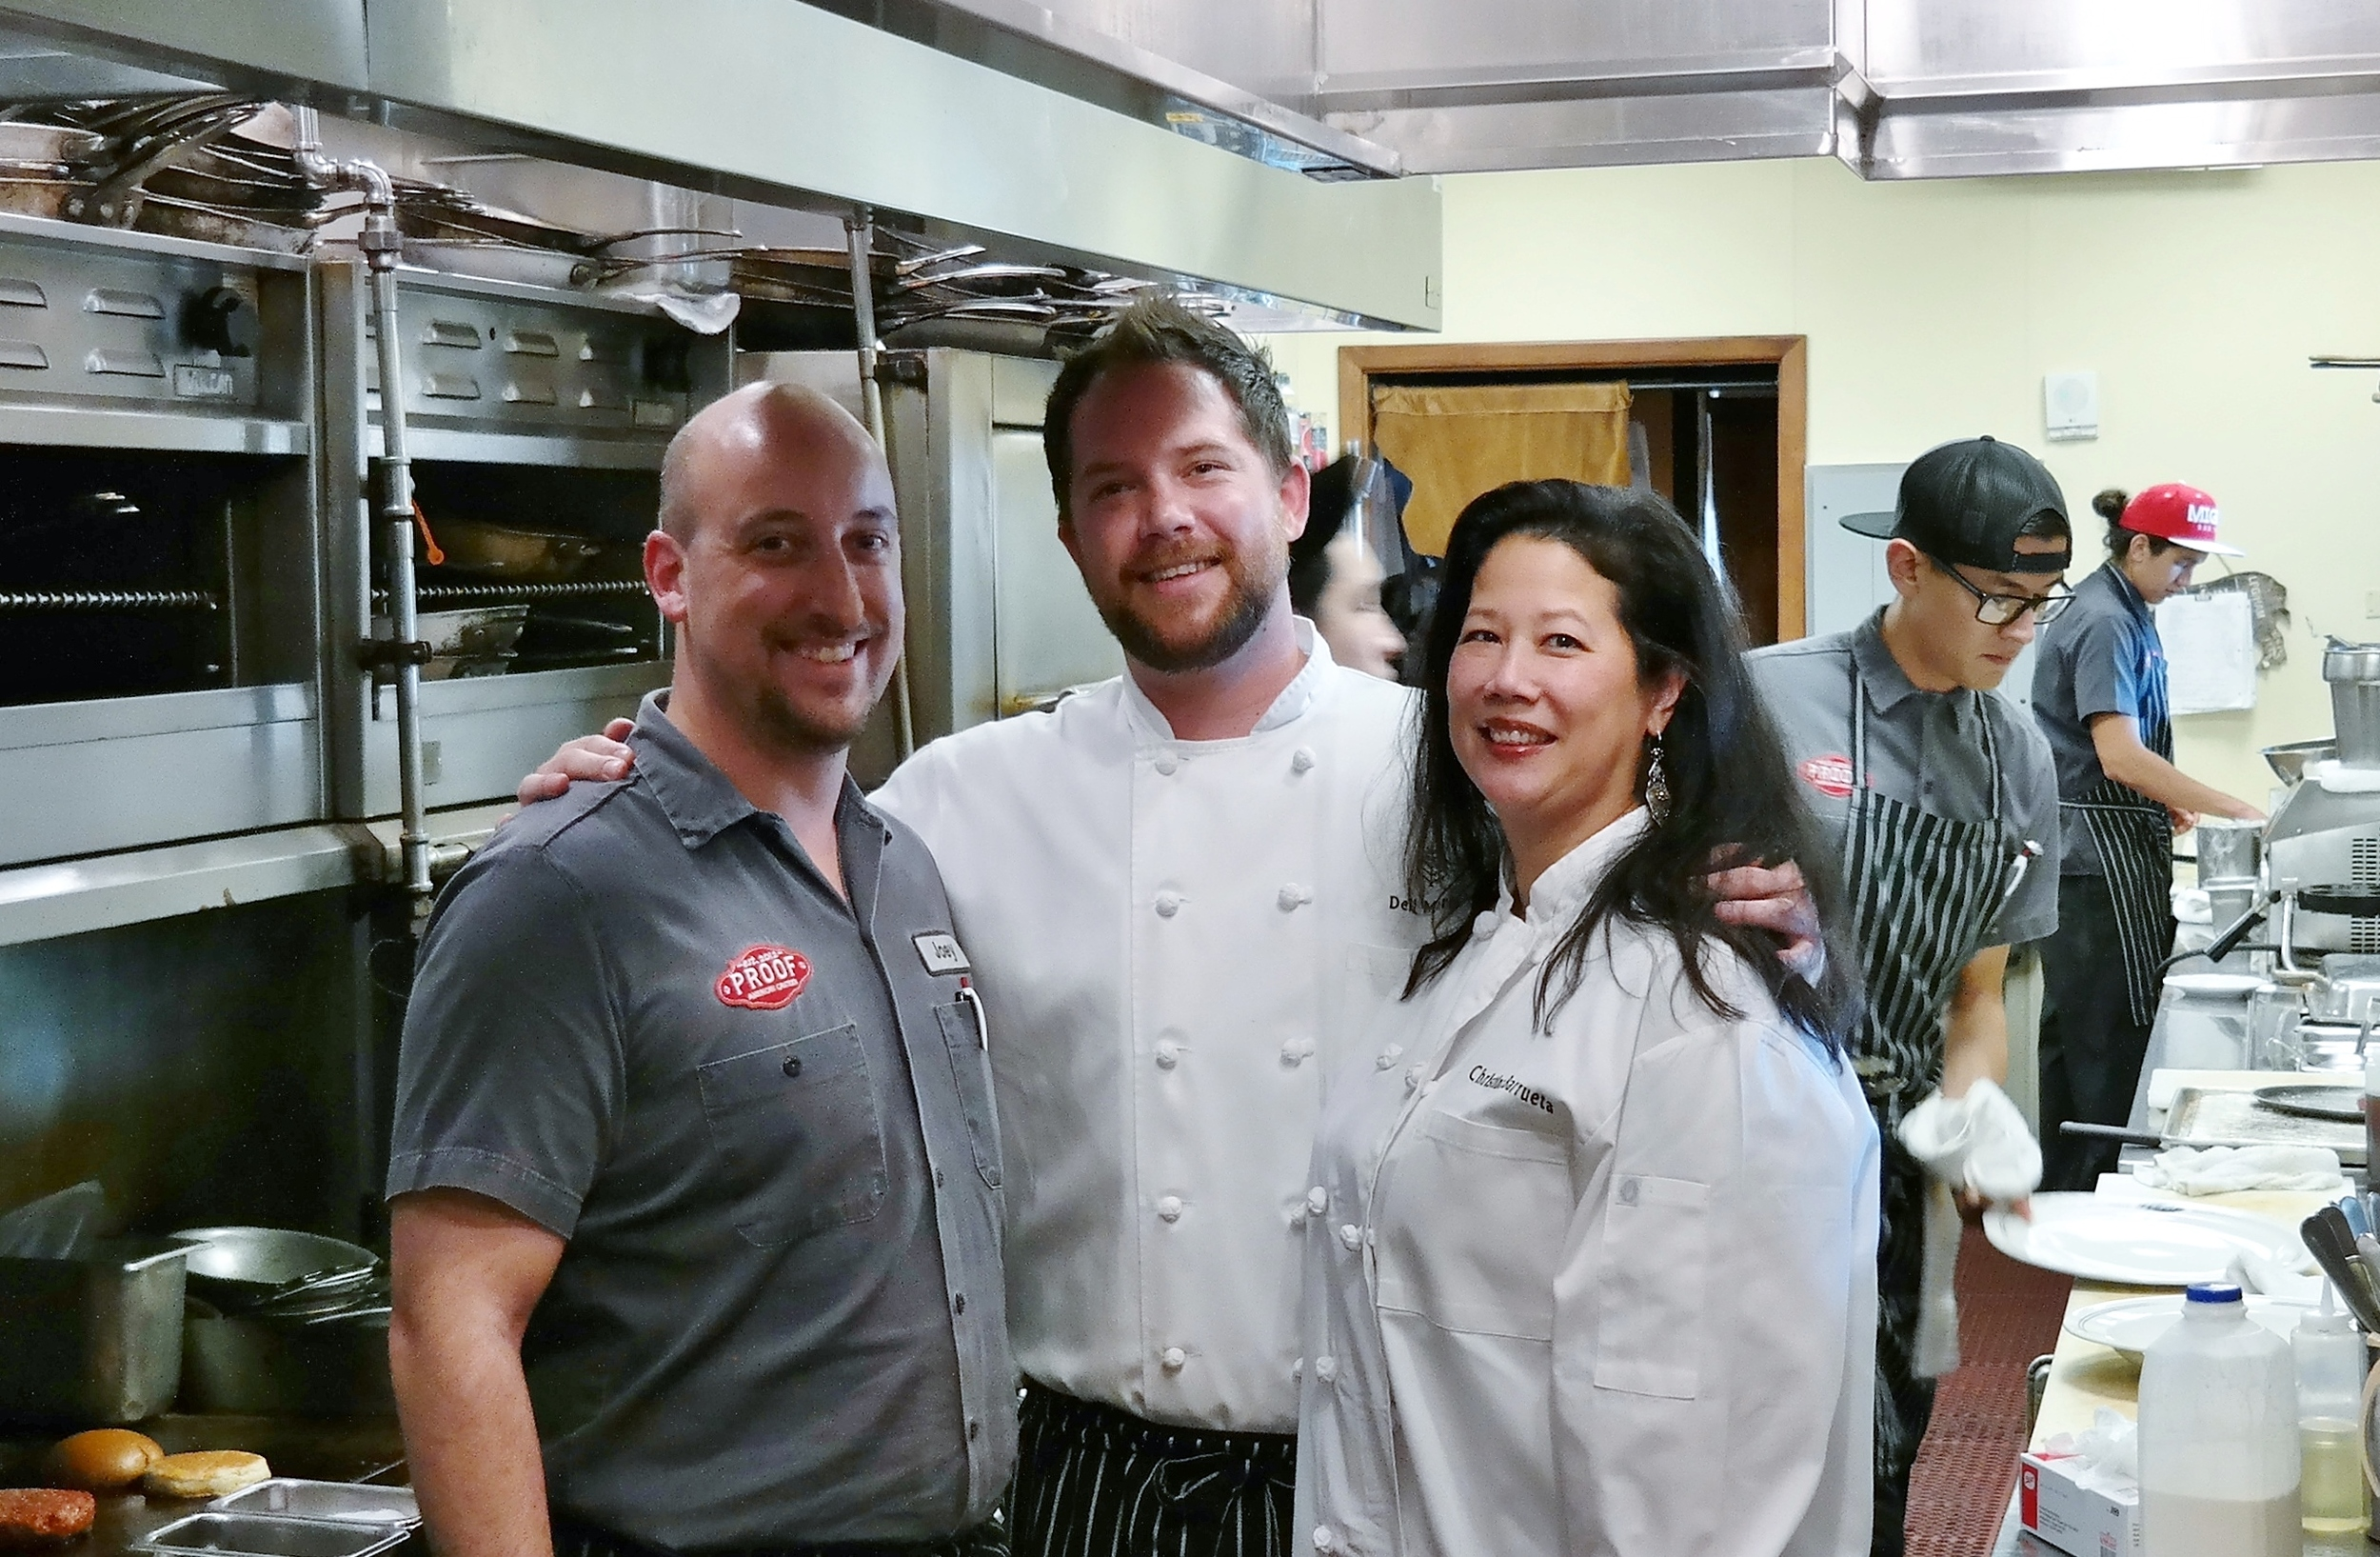 With Chefs Joey Cavaretta and Dell Morris of Proof at the Four Seasons Scottsdale